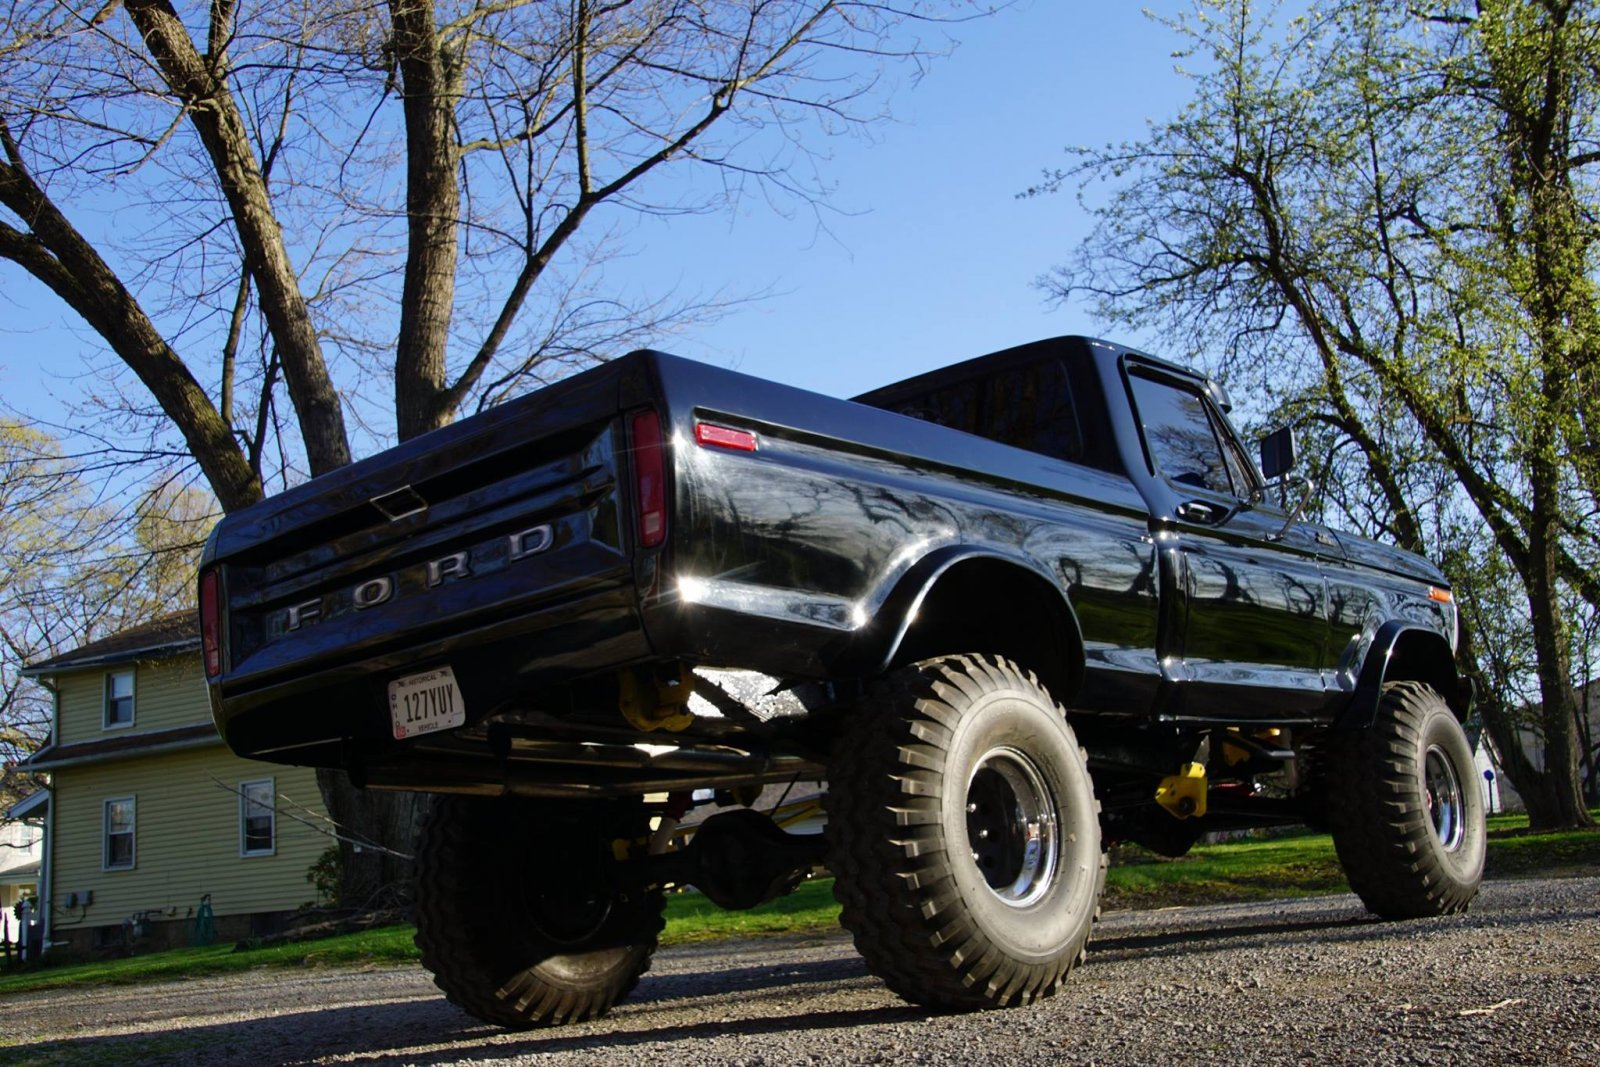 1979 Ford F150 With a 460 Dupont Jet Black Paint 8.jpg